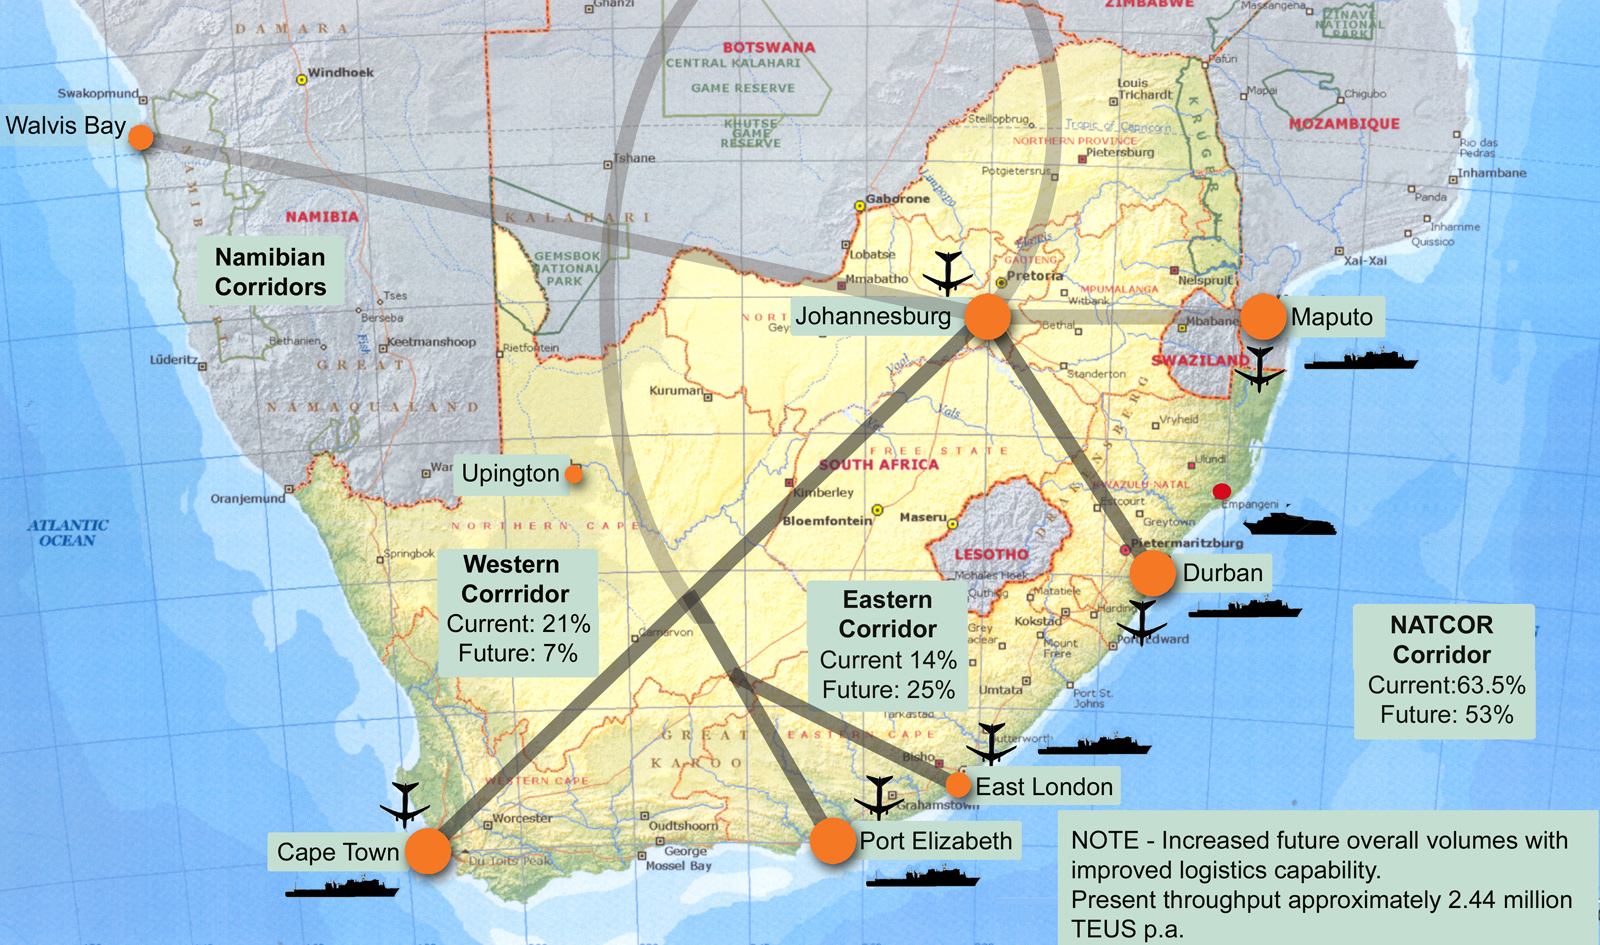 Tambo Springs in South African context